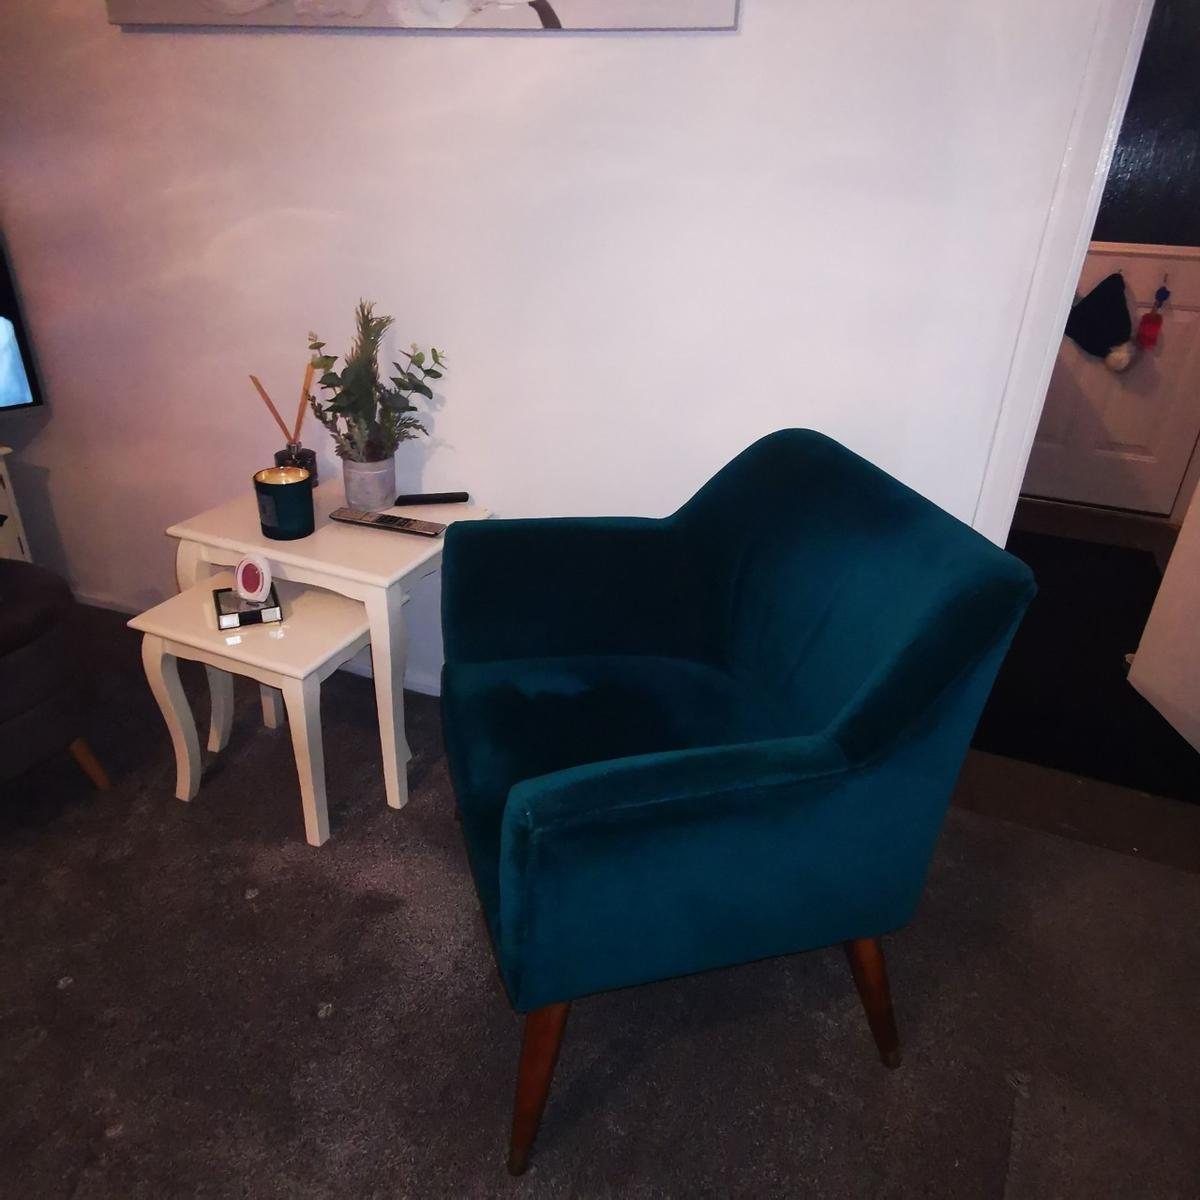 Made. Com 2 setter limited edition teal velvet sofa and teal occasional chair both not even 6 month old cost over £1000 excellent condition from a smoke free home. Selling due to move. Pick up only from WF4.